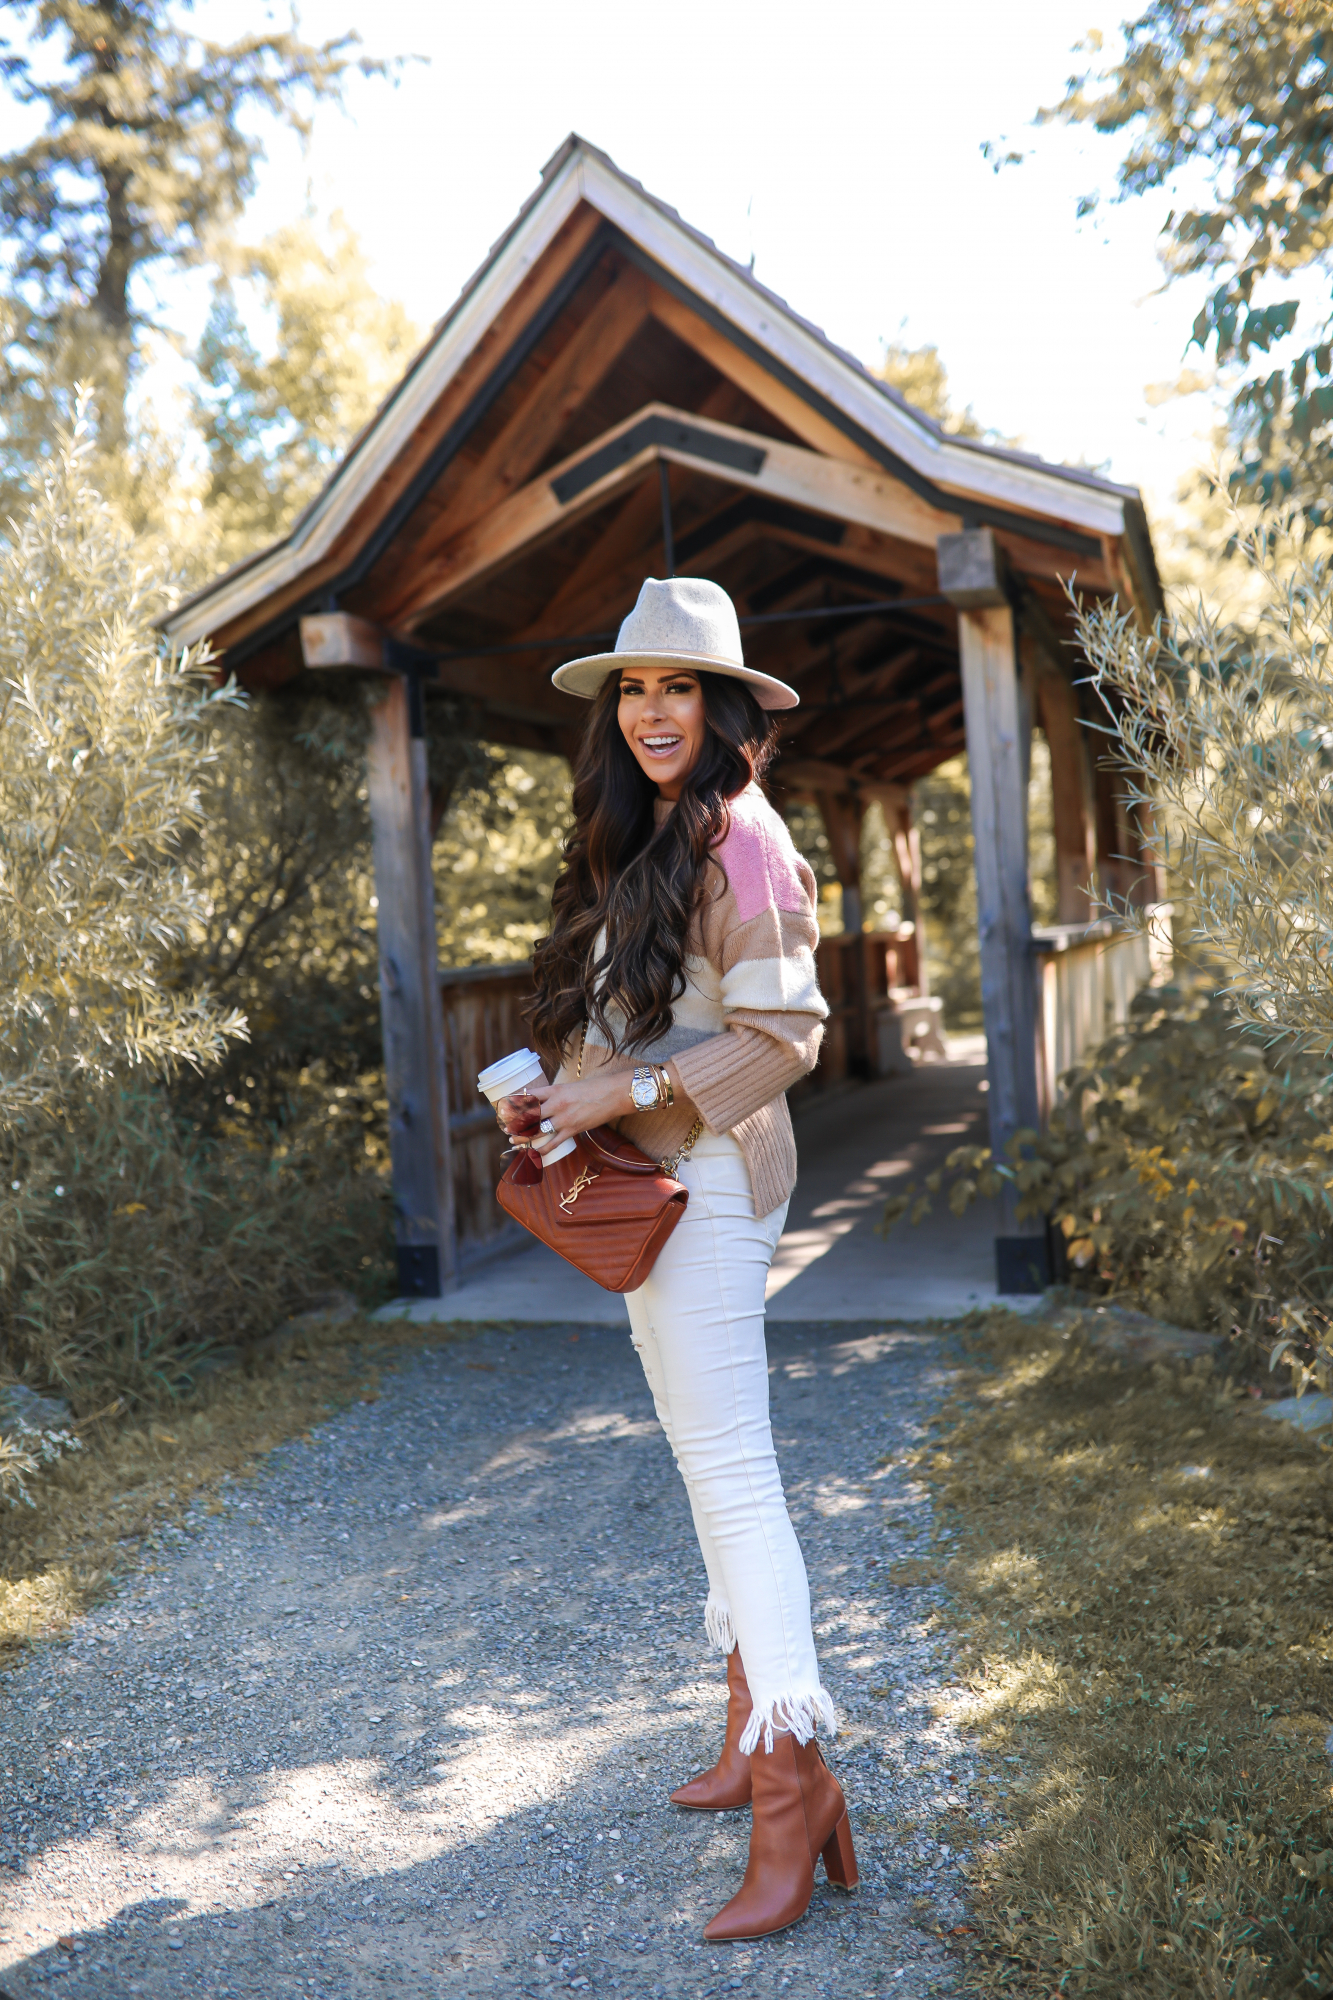 fall fashion pinterest 2019, stowe vermont, YSL collage tan bag, Lack of color mack hat, Topshop colorblock sweater tan and pink, Emily Gemma-2